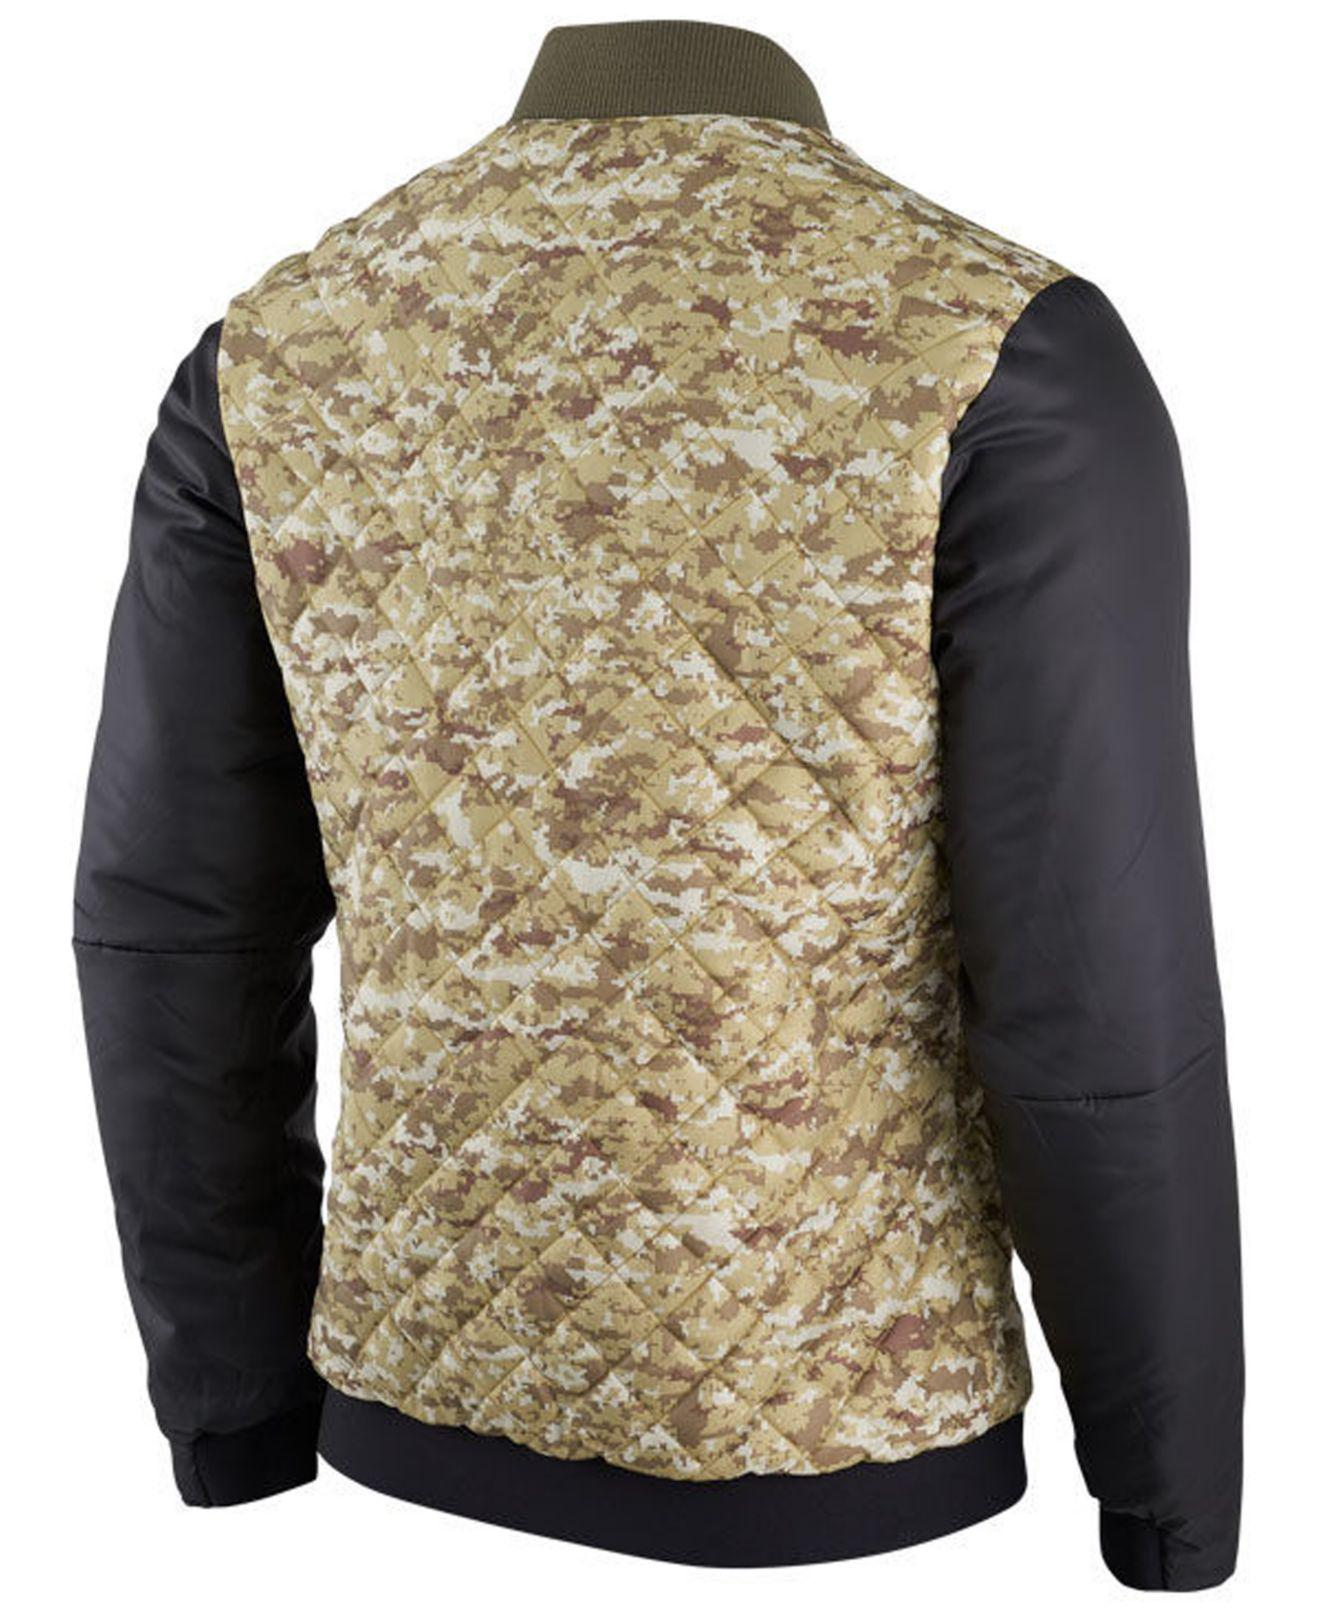 Lyst - Nike New York Giants Salute To Service Bomber Jacket in Green ... 8b2e6c8f4